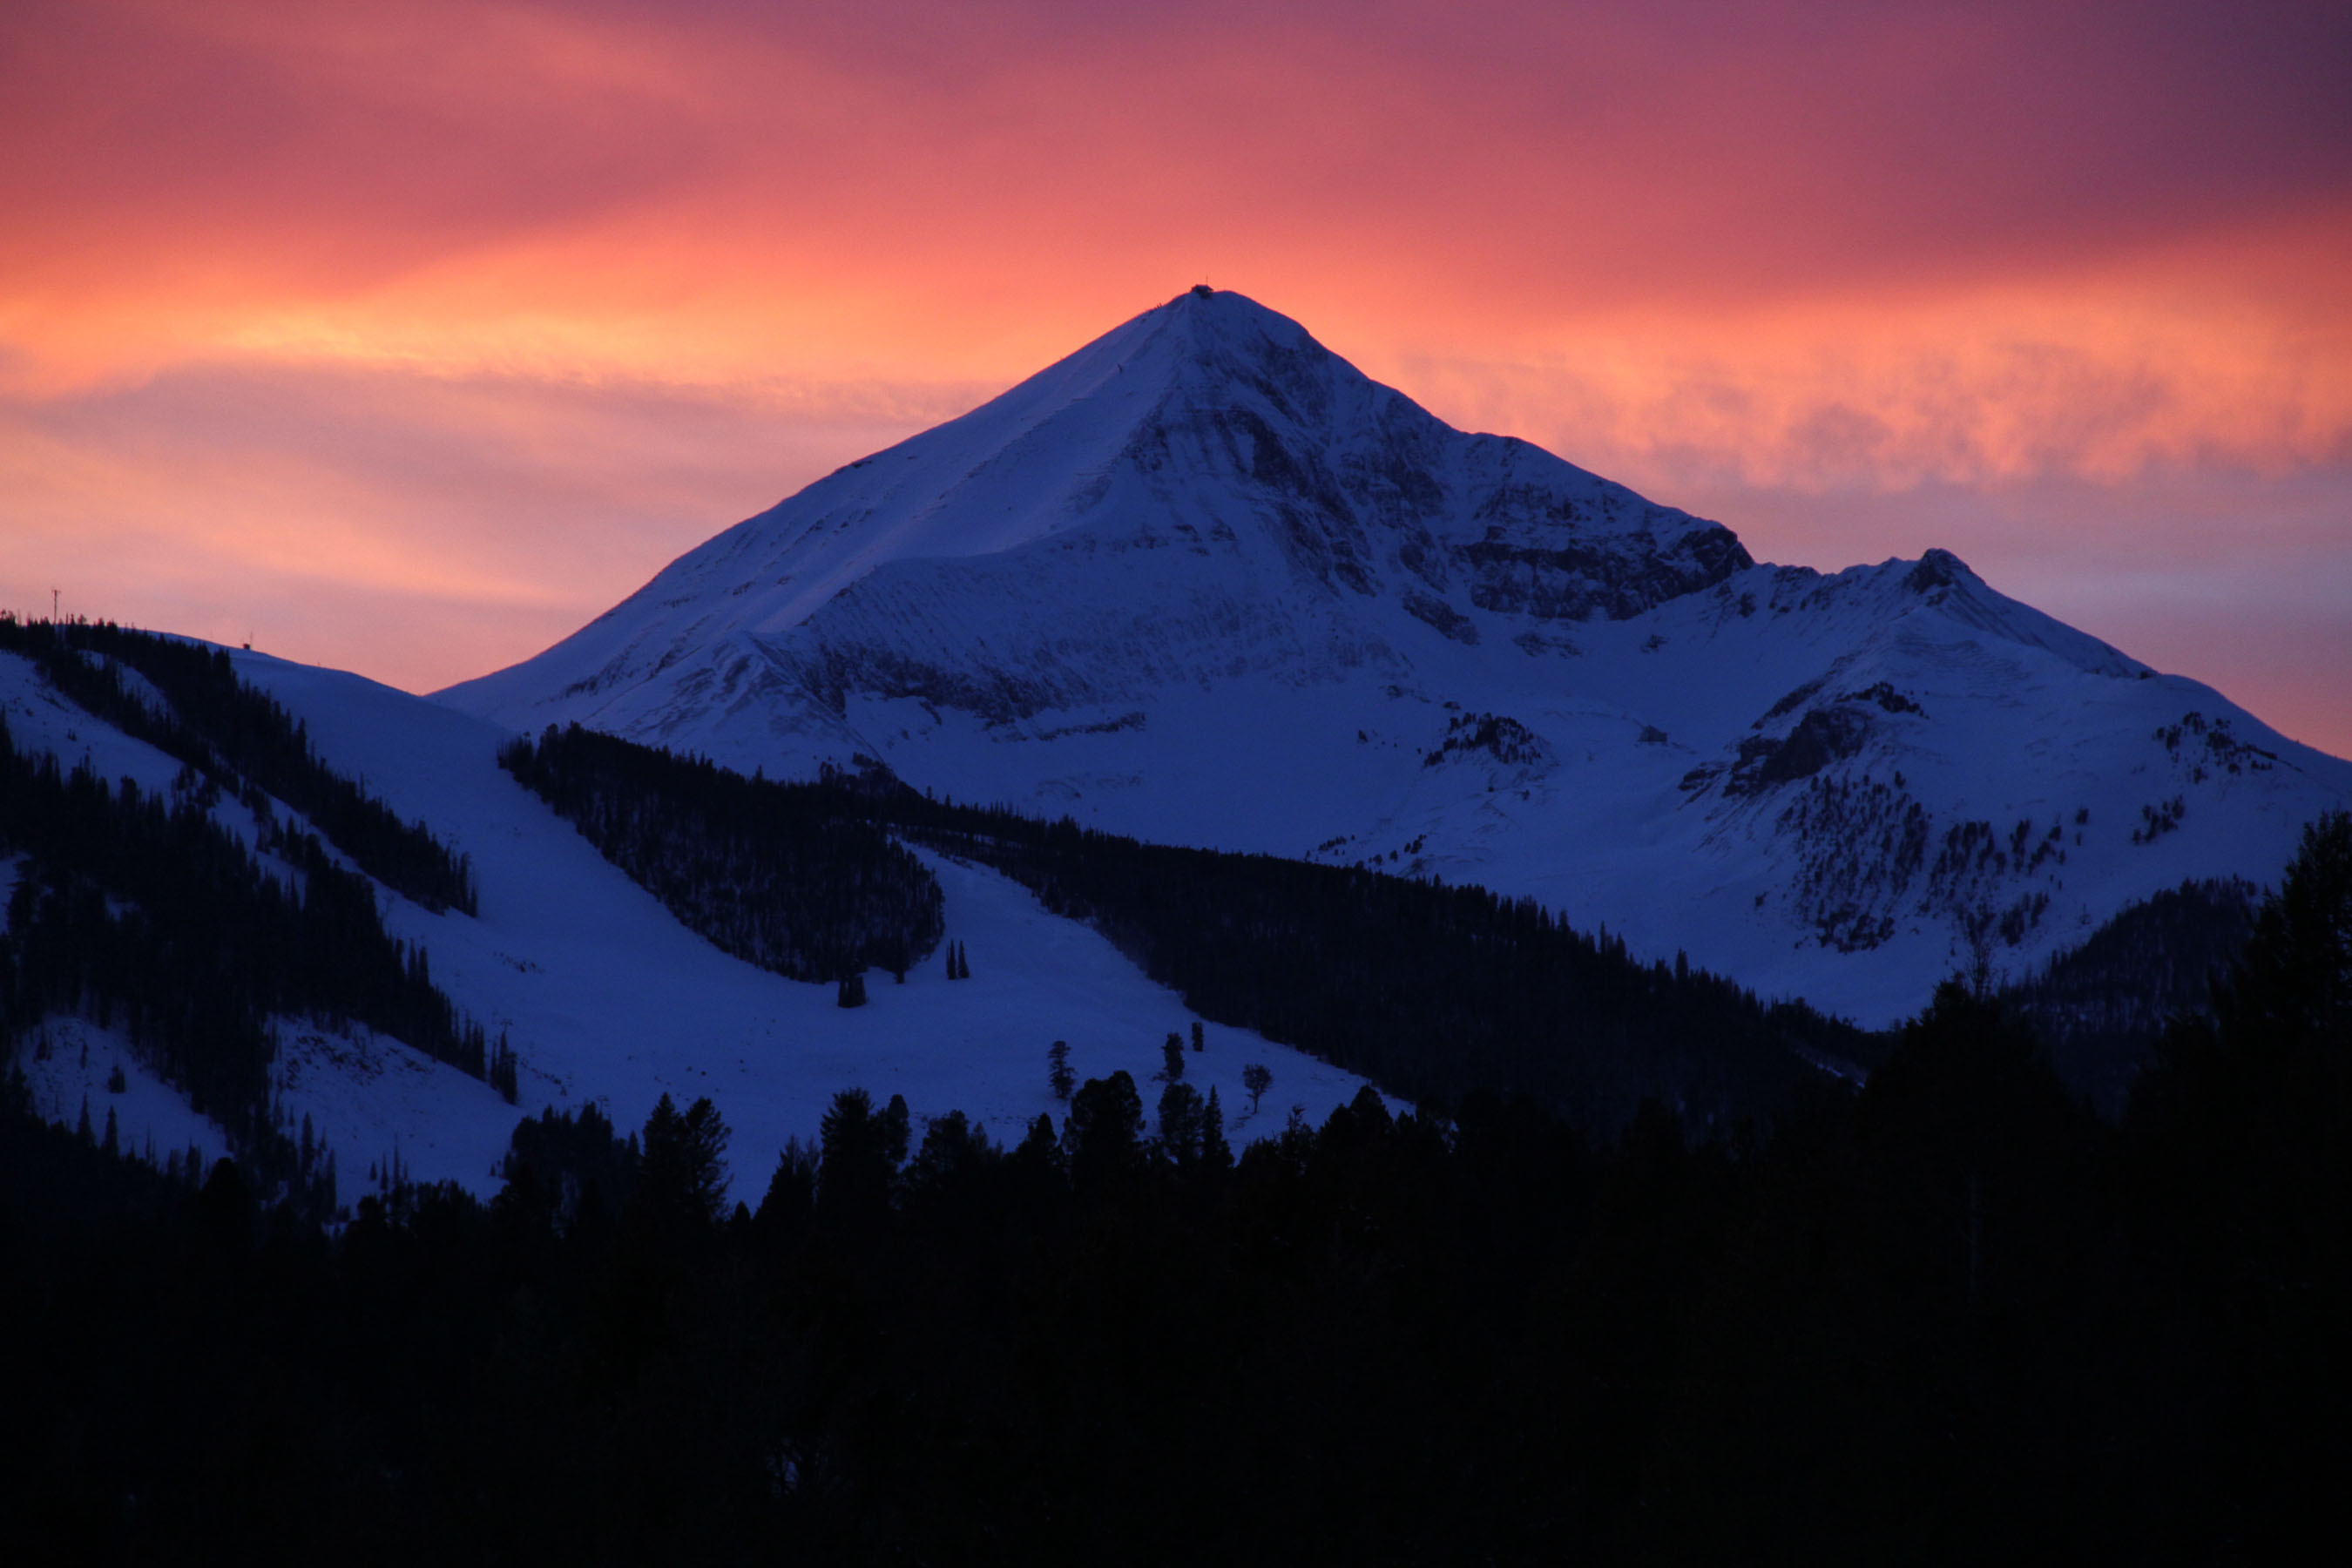 Big Sky's Lone Peak dominates the landscape of this up and coming community in the Mountain Resort Tourism Industry. (PRNewsFoto/Montana Living ~ Big Sky Real Estate) (PRNewsFoto/MONTANA LIVING _ BIG SKY)